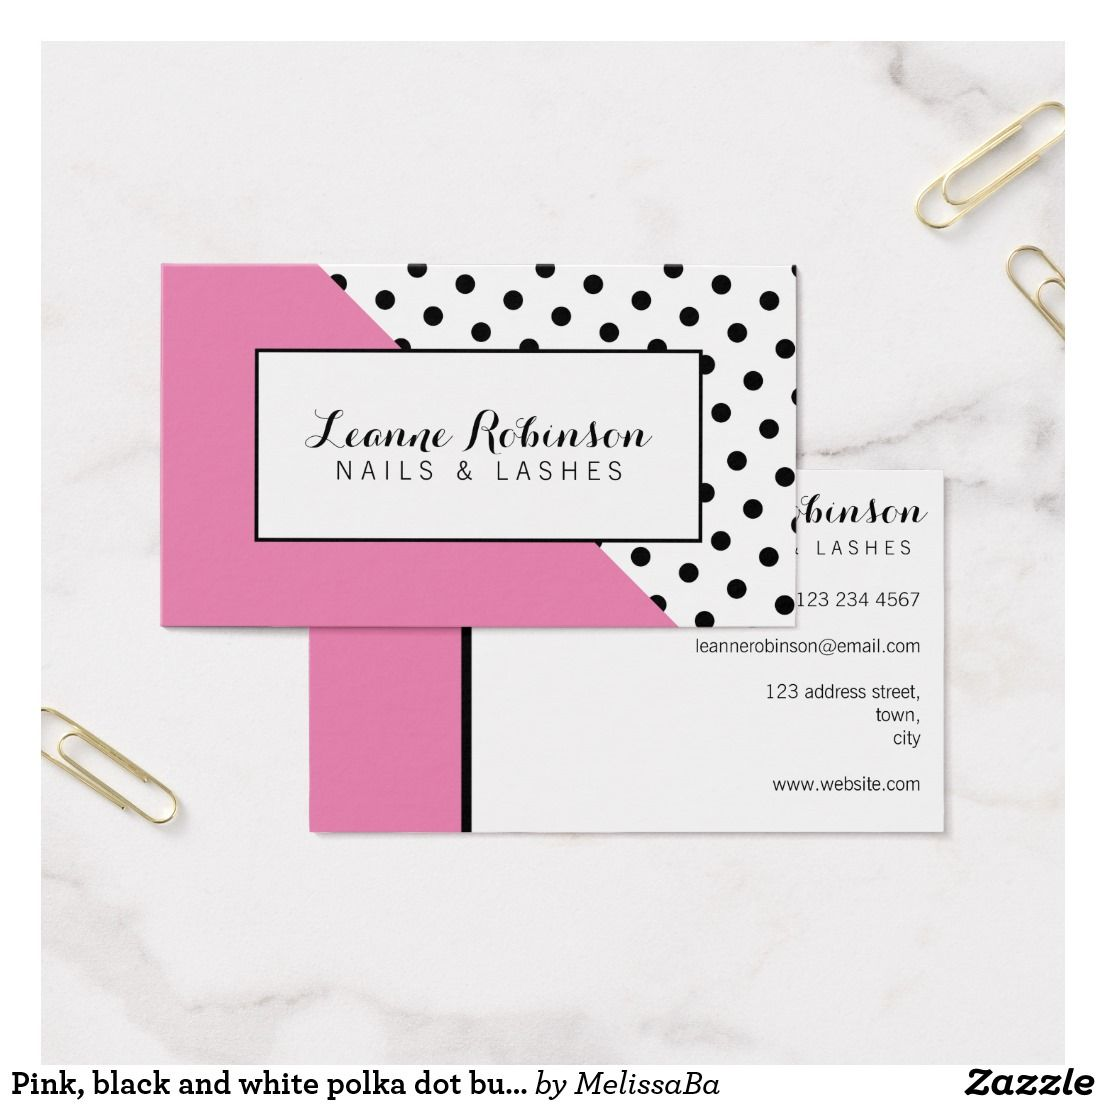 Pink, black and white polka dot business card | Business | Pinterest ...